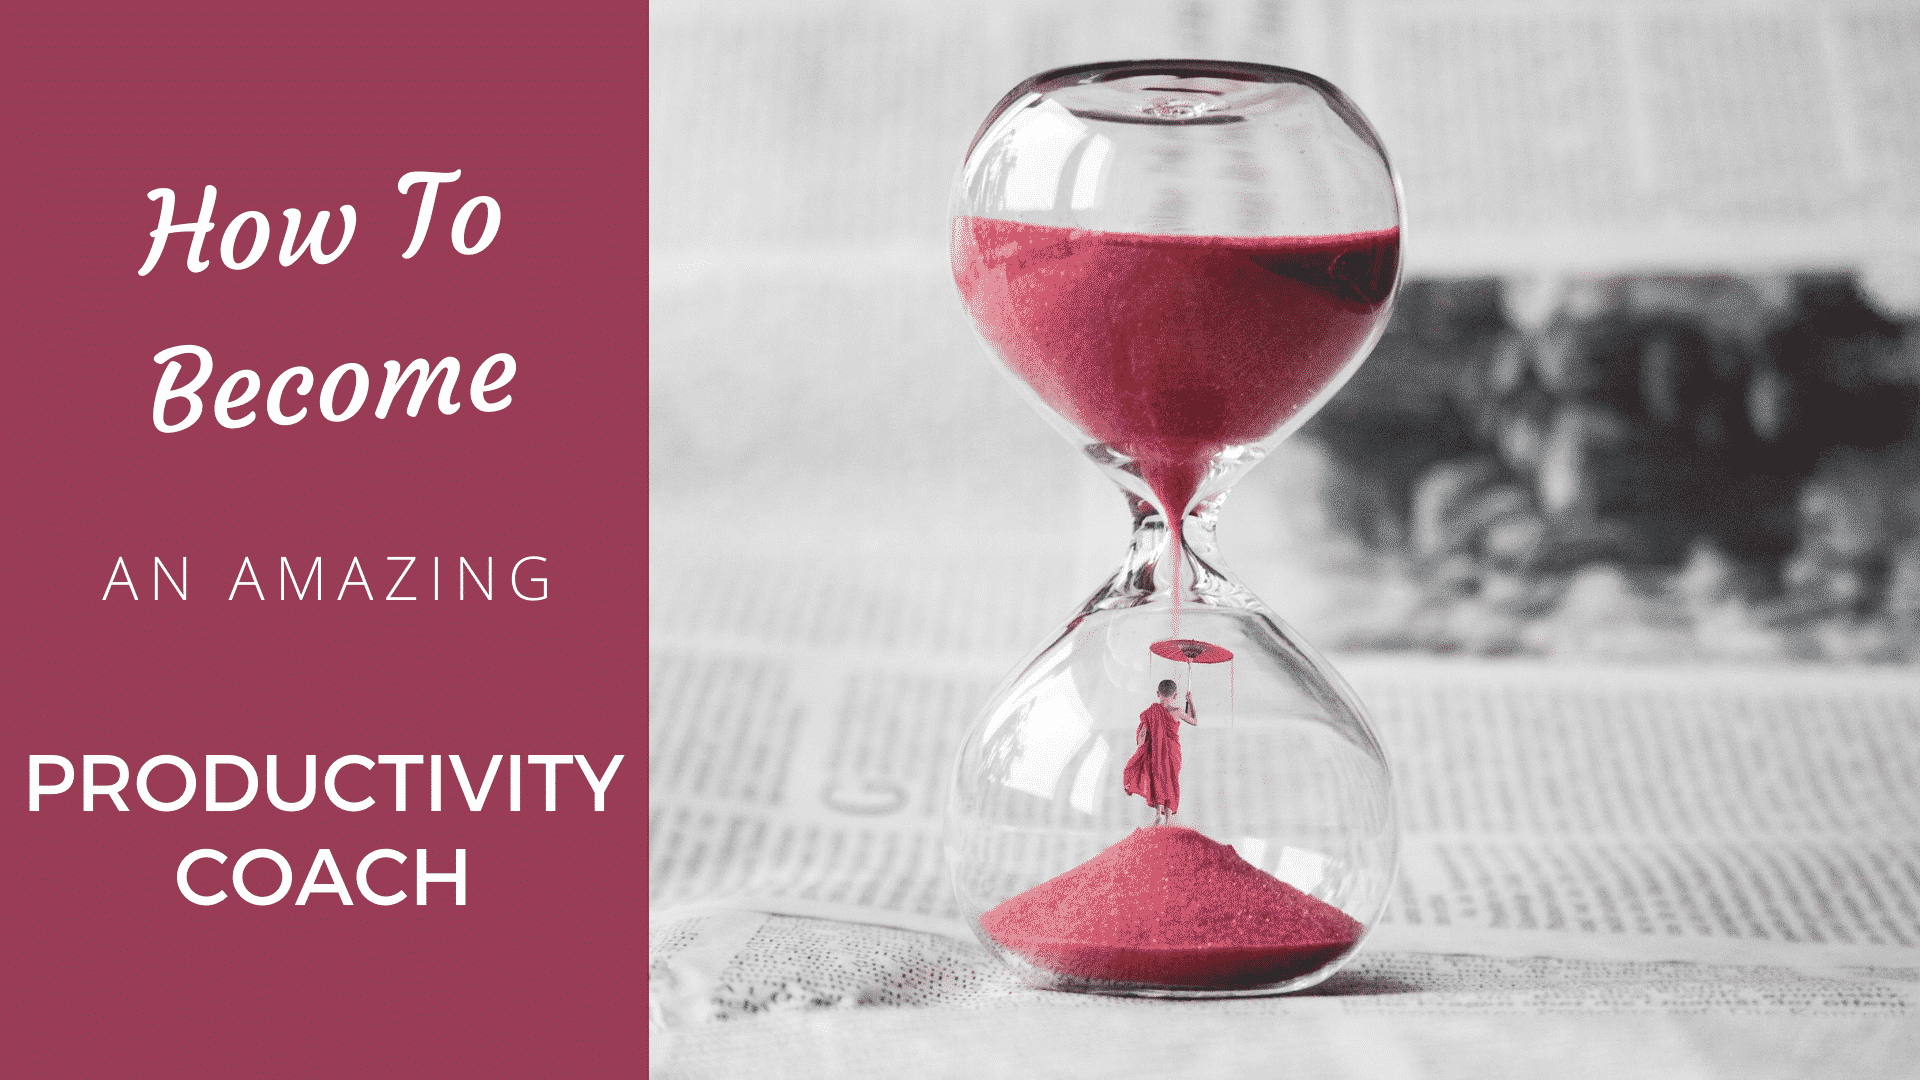 How to Become an Amazing Productivity Coach in 2021? Productivity Coach